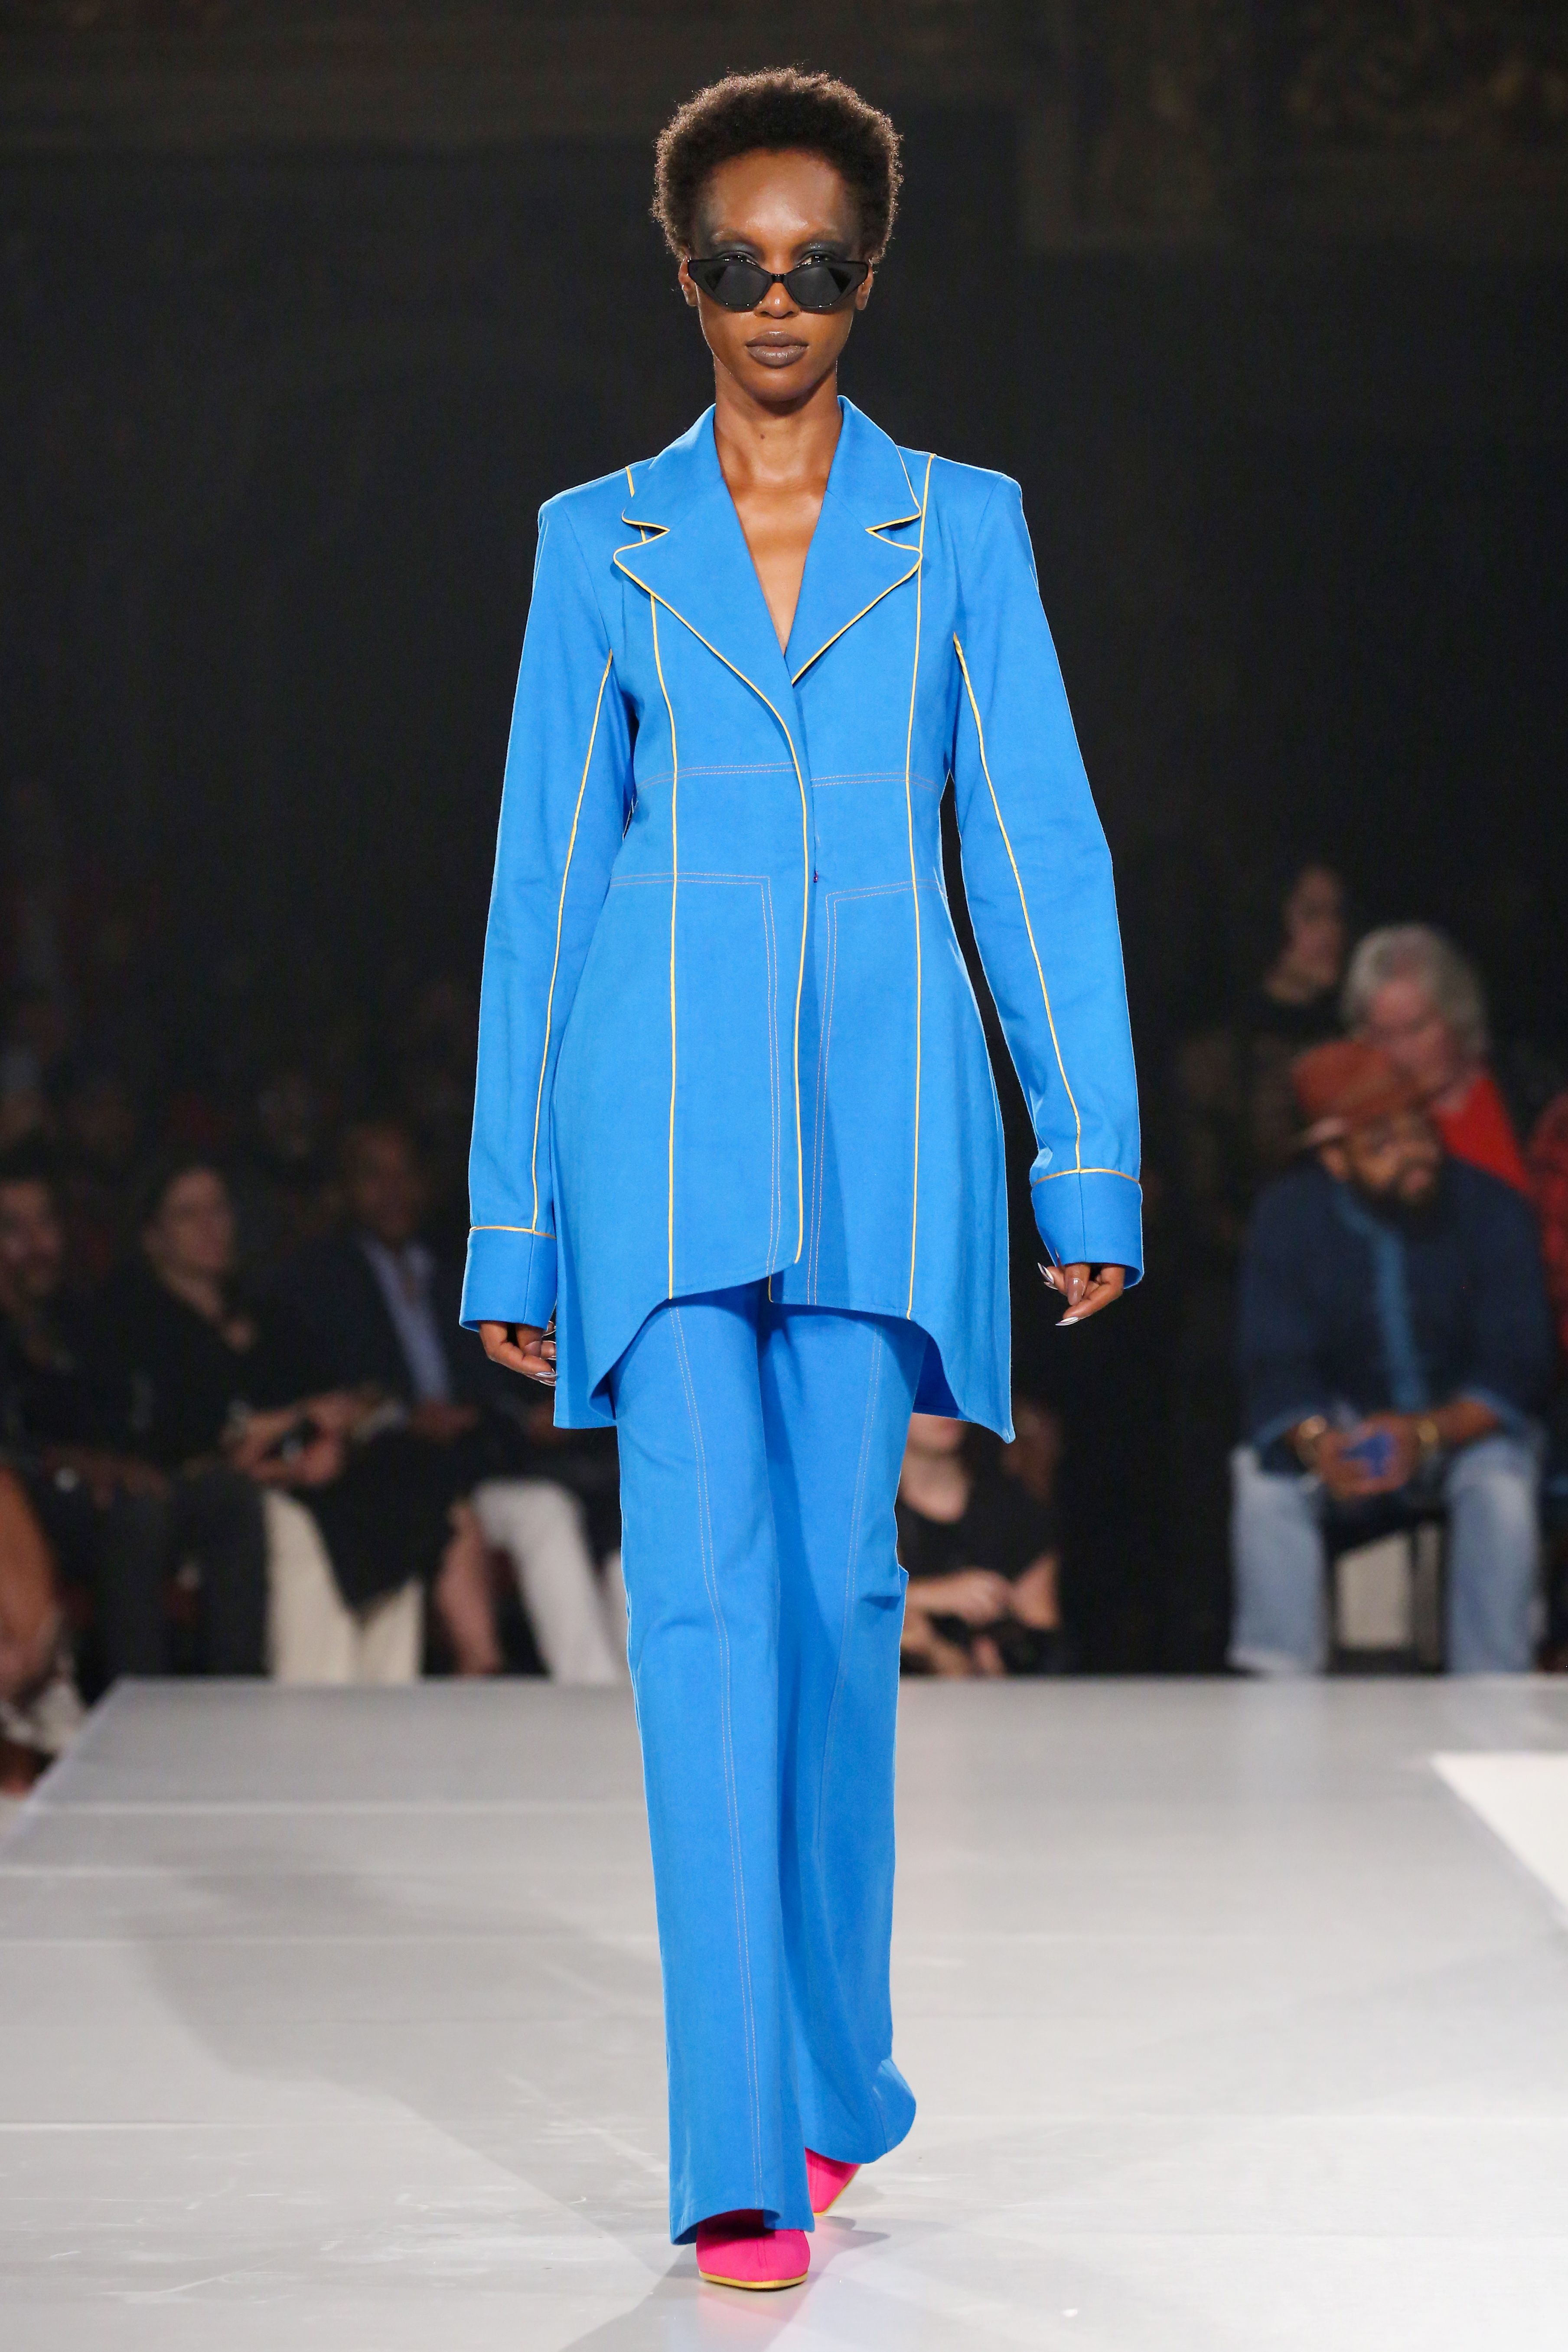 Model on the catwalkPyer Moss Collection 3, Runway, Spring Summer 2020, New York Fashion Week, USA - 08 Sep 2019